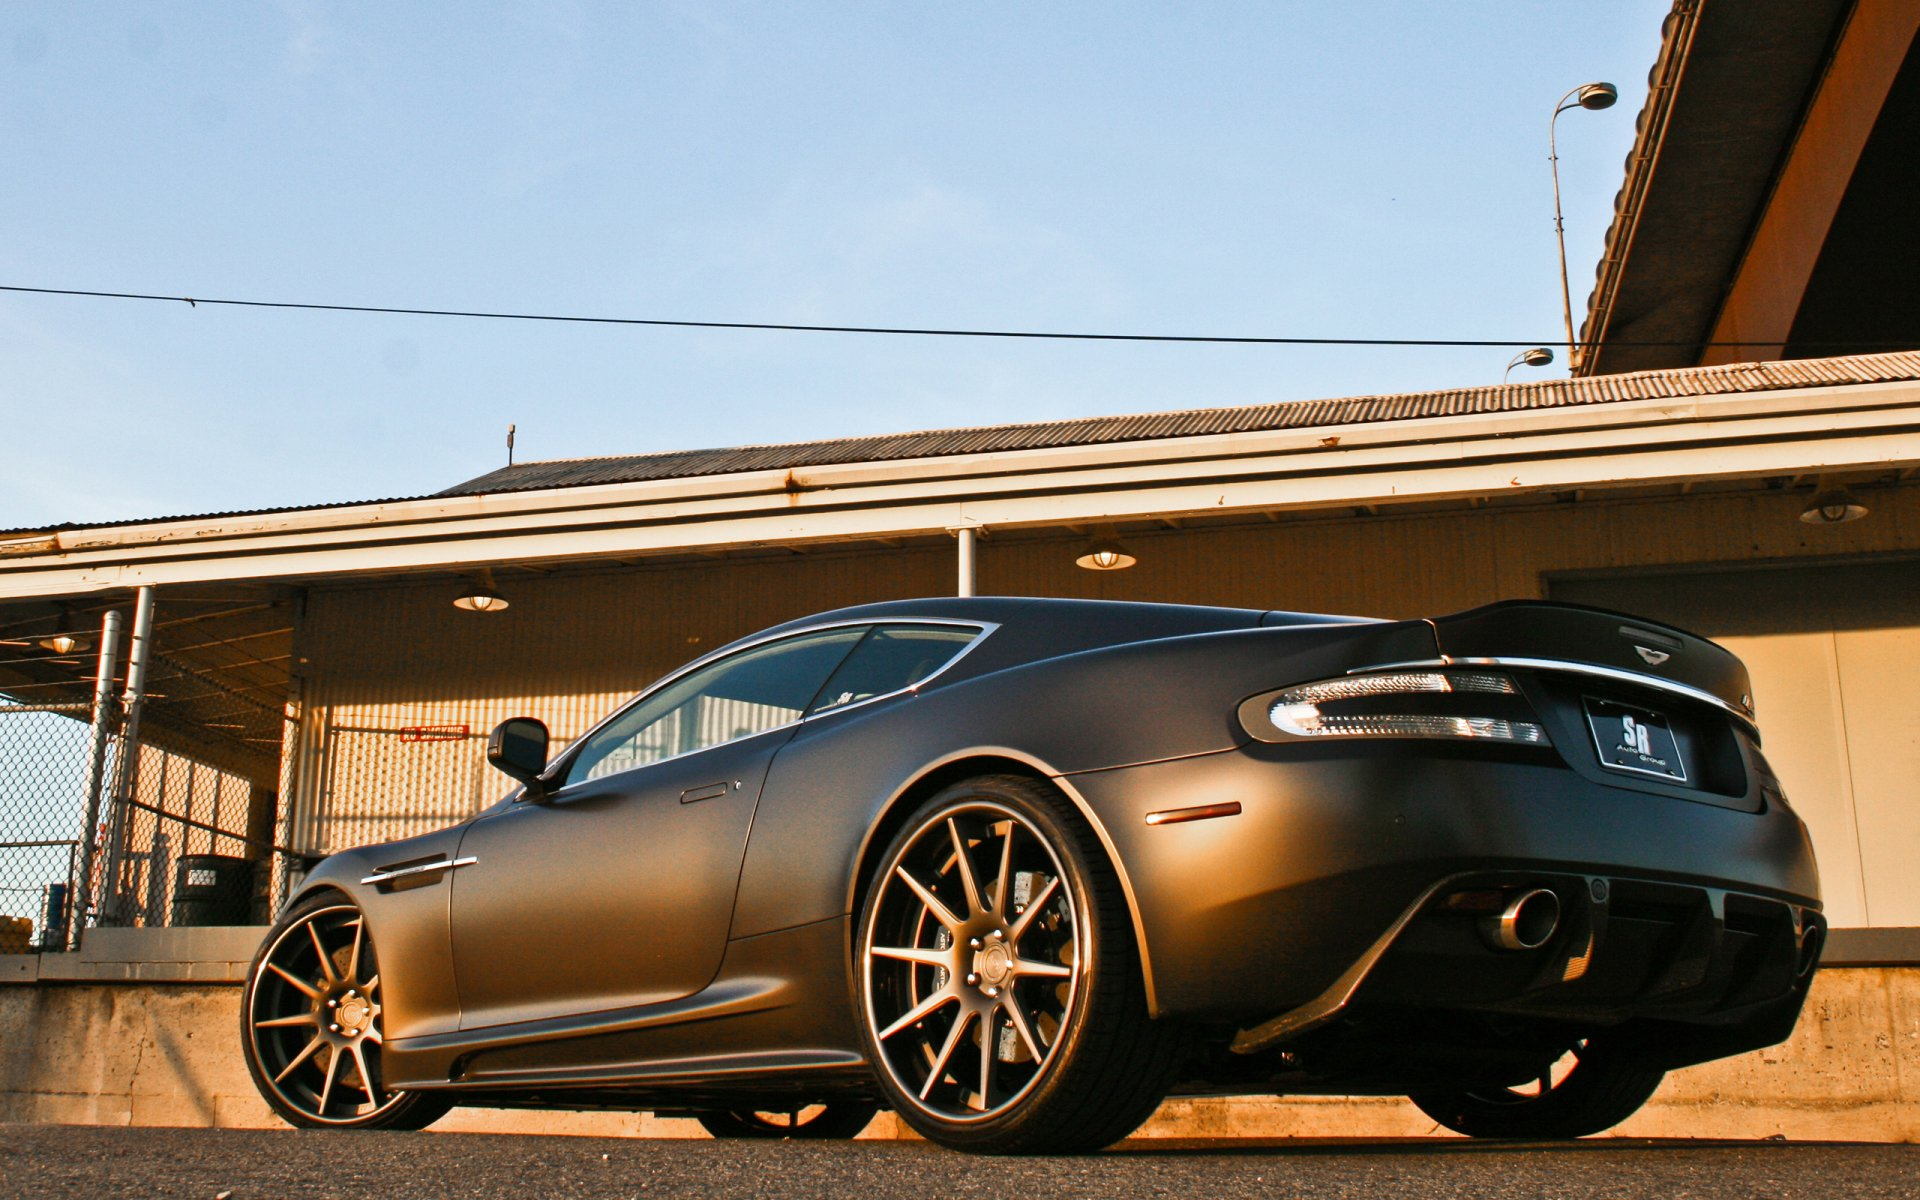 Vehicles - Aston Martin DBS  Wallpaper